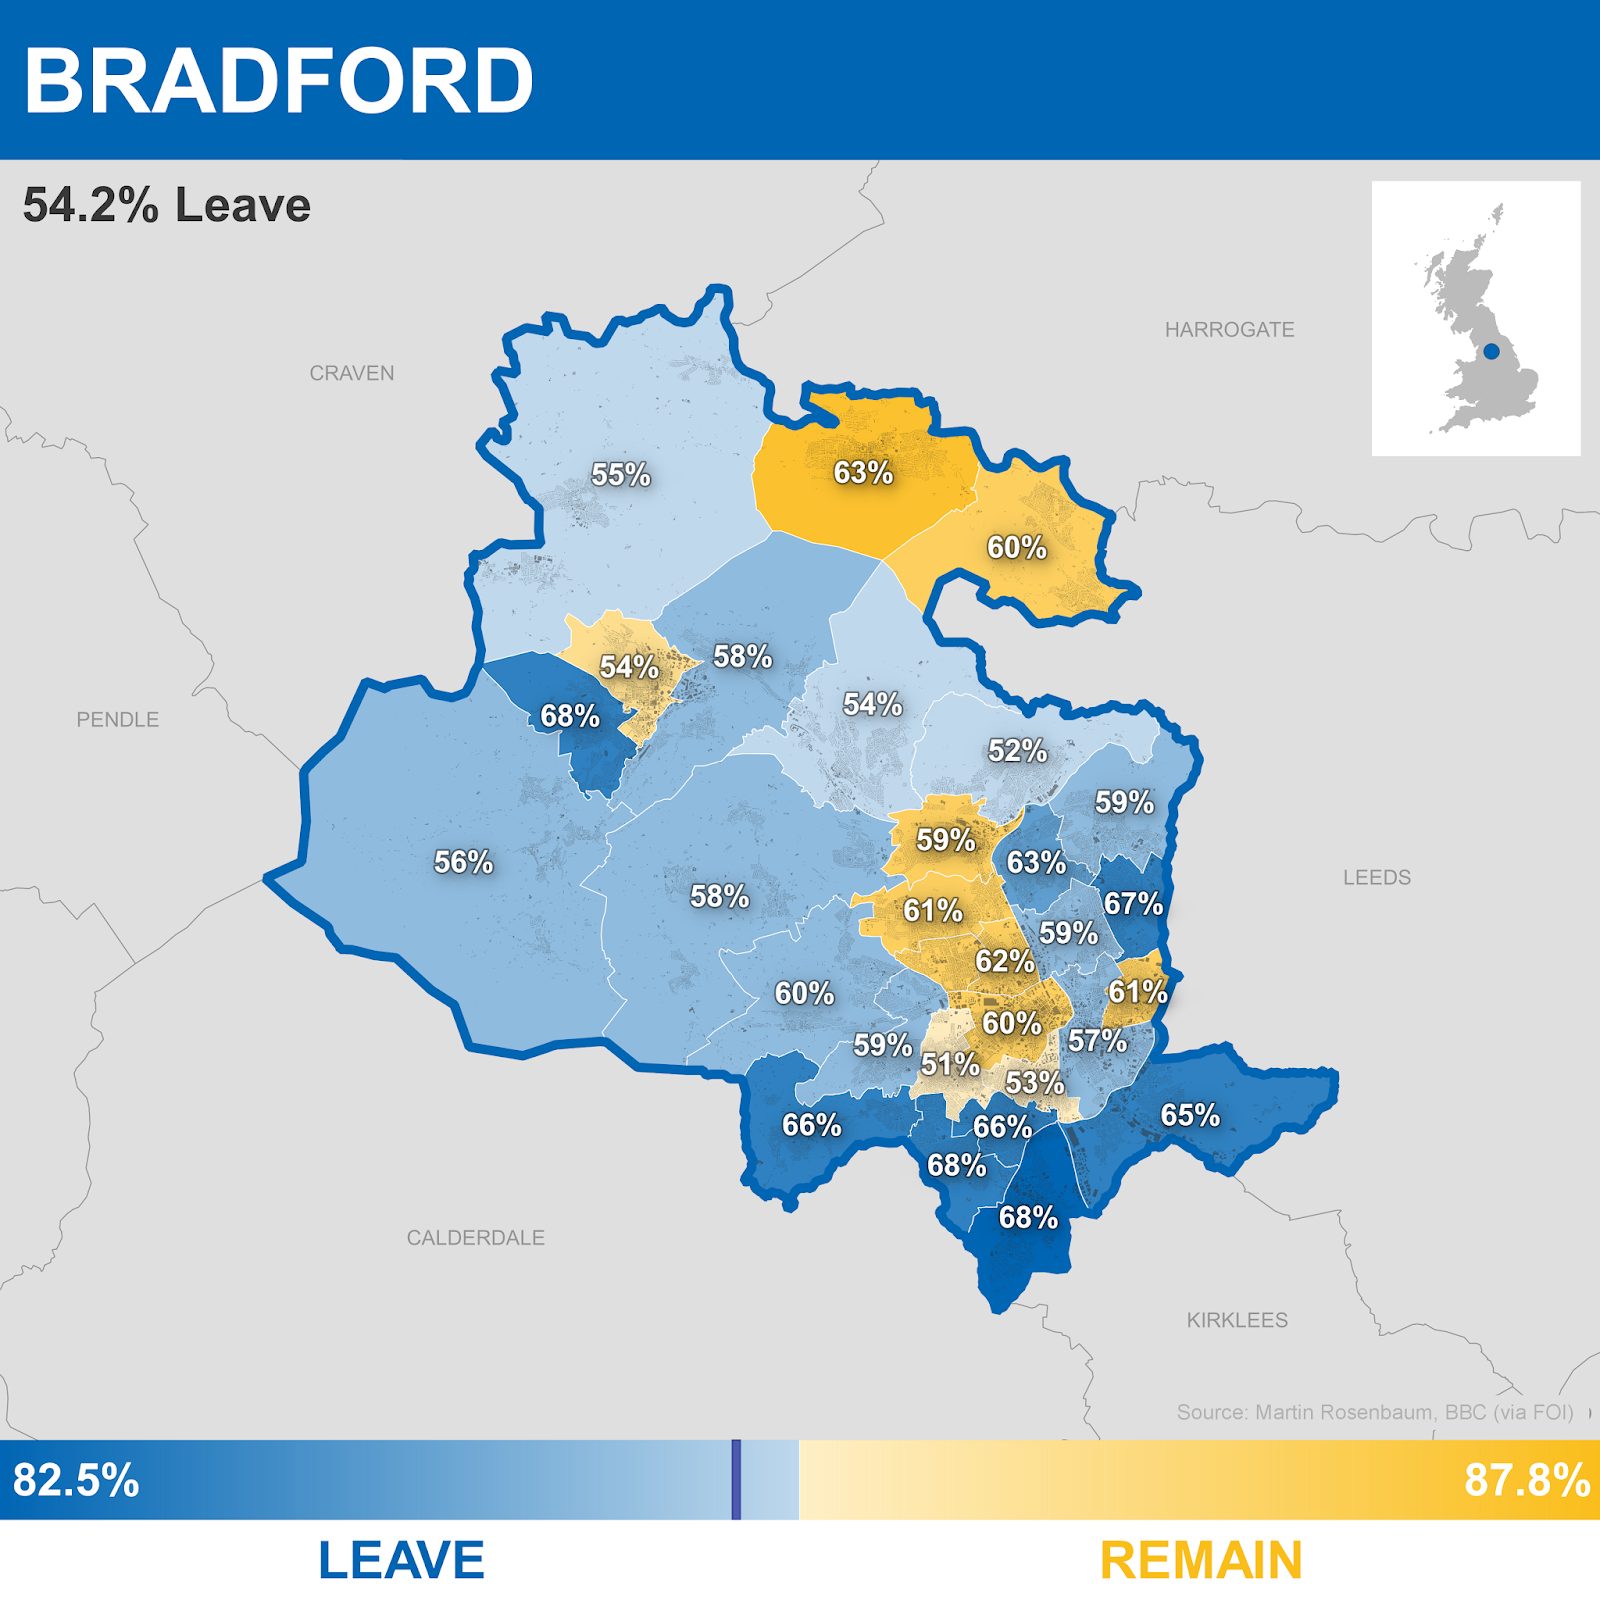 Bradford referendum results